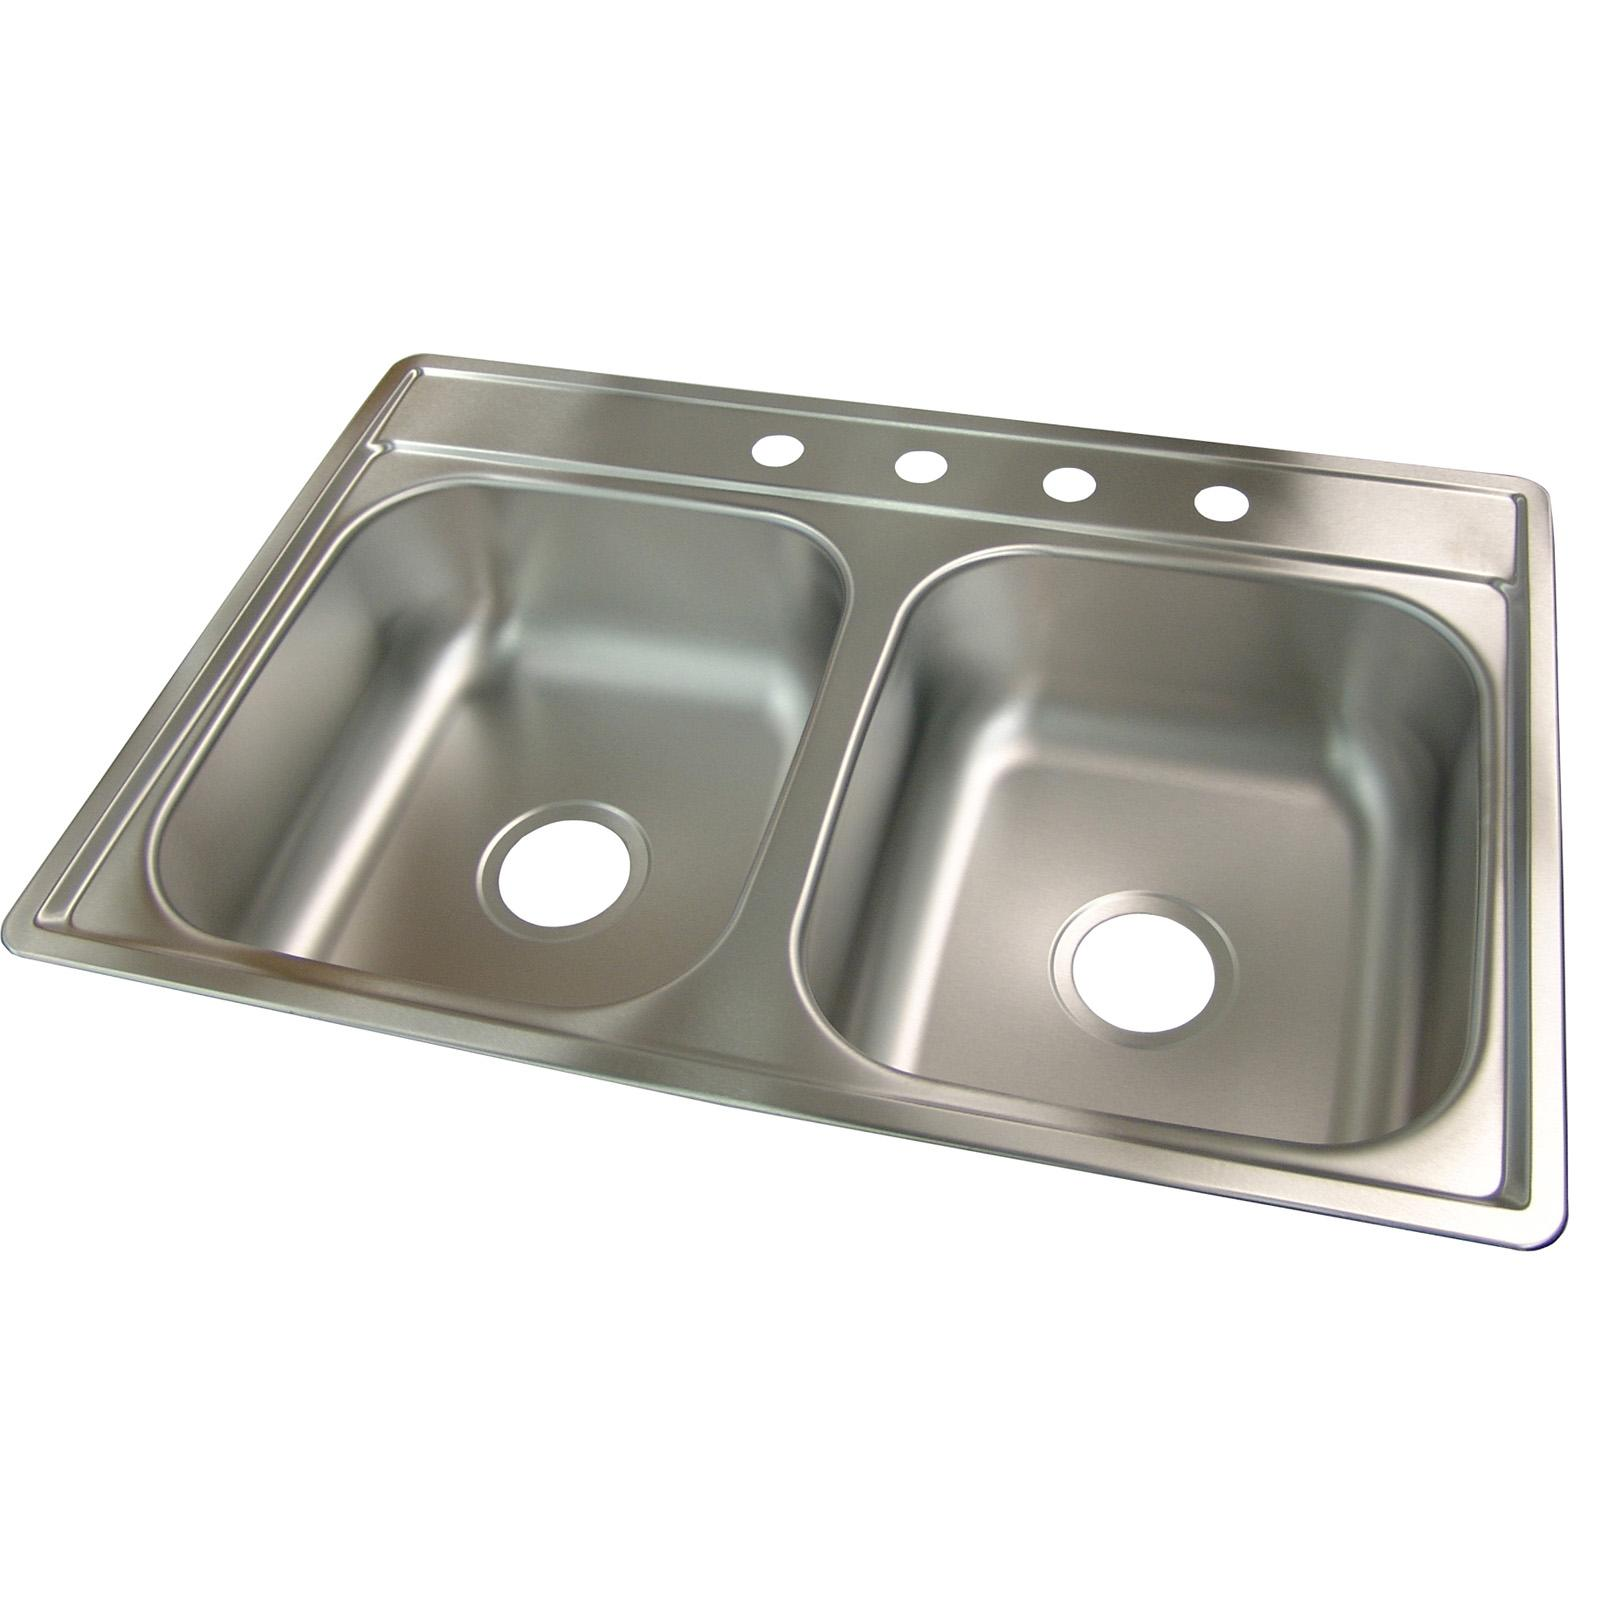 Kitchen sink manufacturers usa | Compare Prices at Nextag